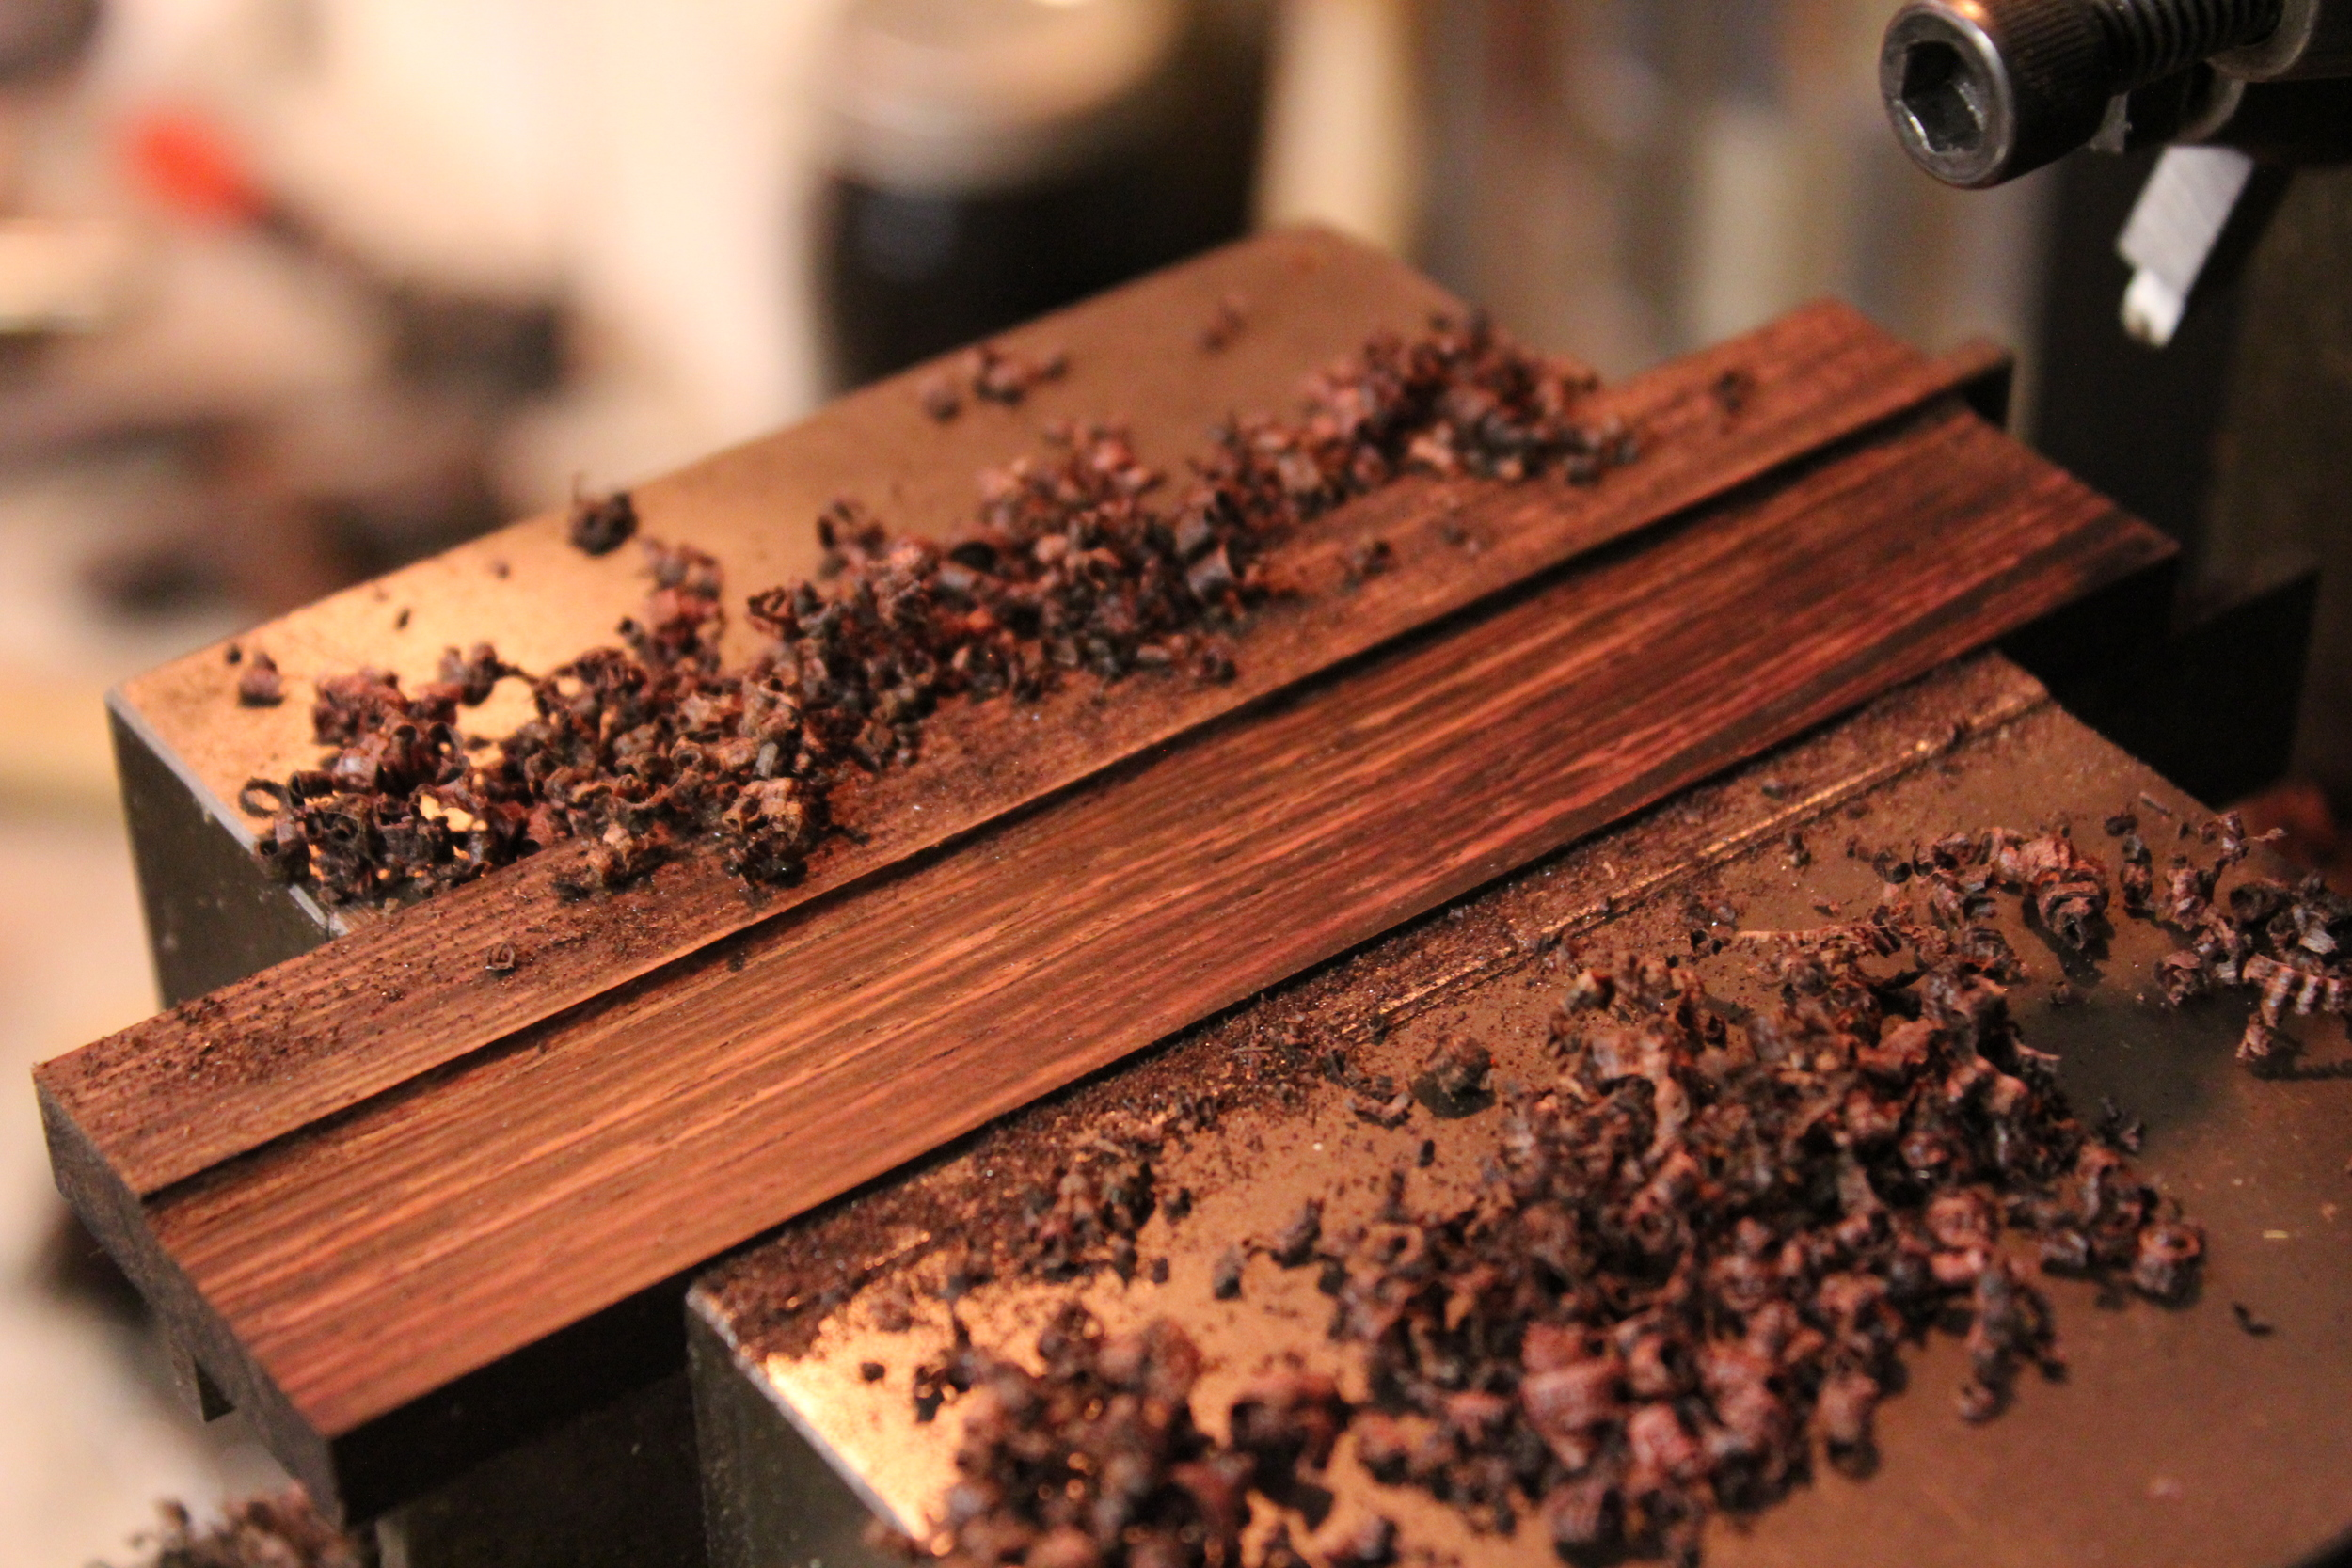 Shaper milling down Rosewood. Not typically used for wood, shapers do accurate work and leave a beautiful finish.